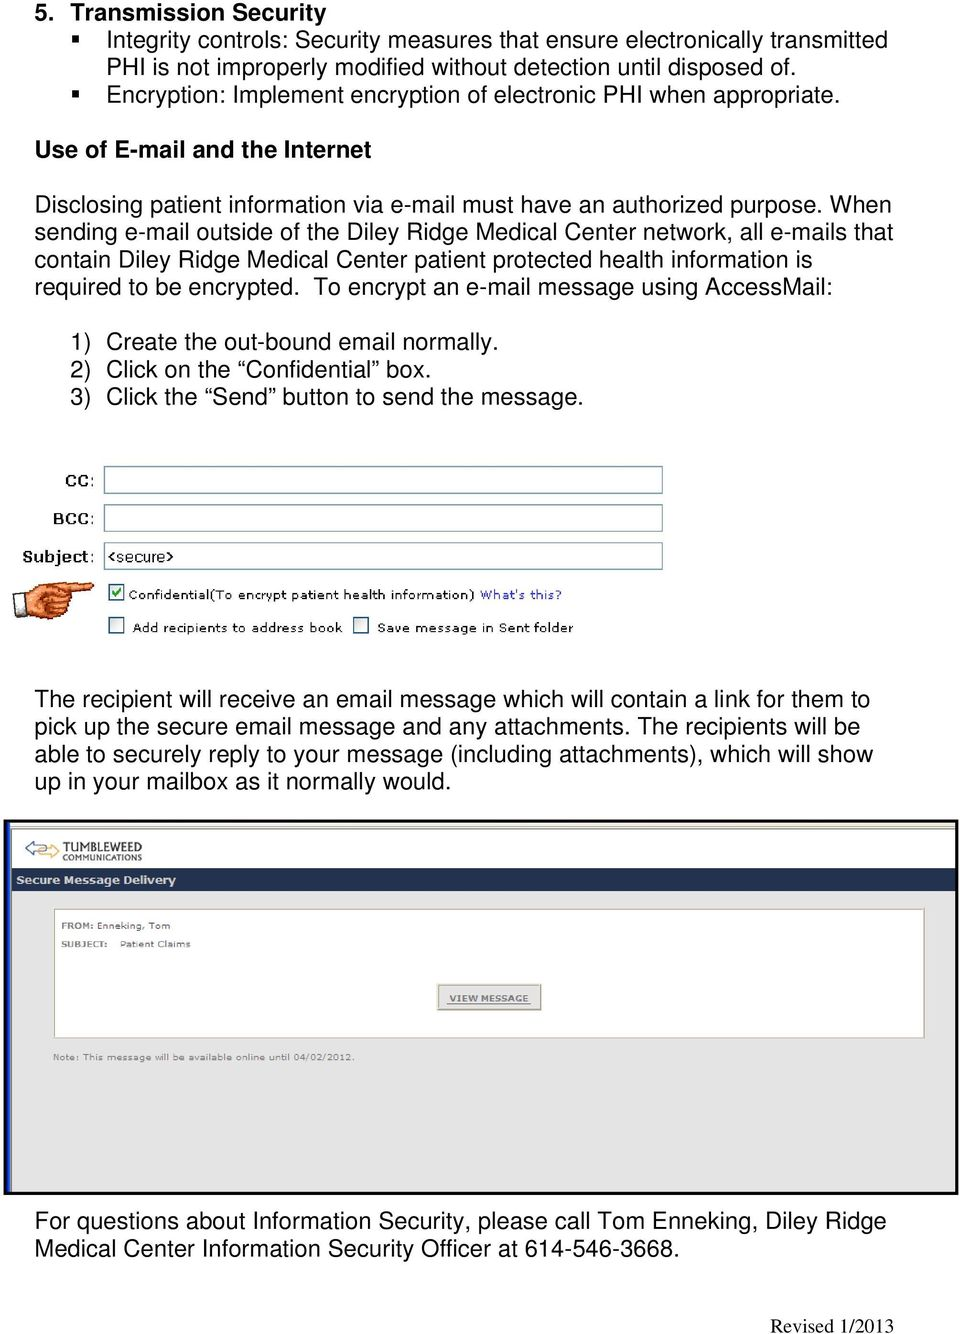 When sending e-mail outside of the Diley Ridge Medical Center network, all e-mails that contain Diley Ridge Medical Center patient protected health information is required to be encrypted.